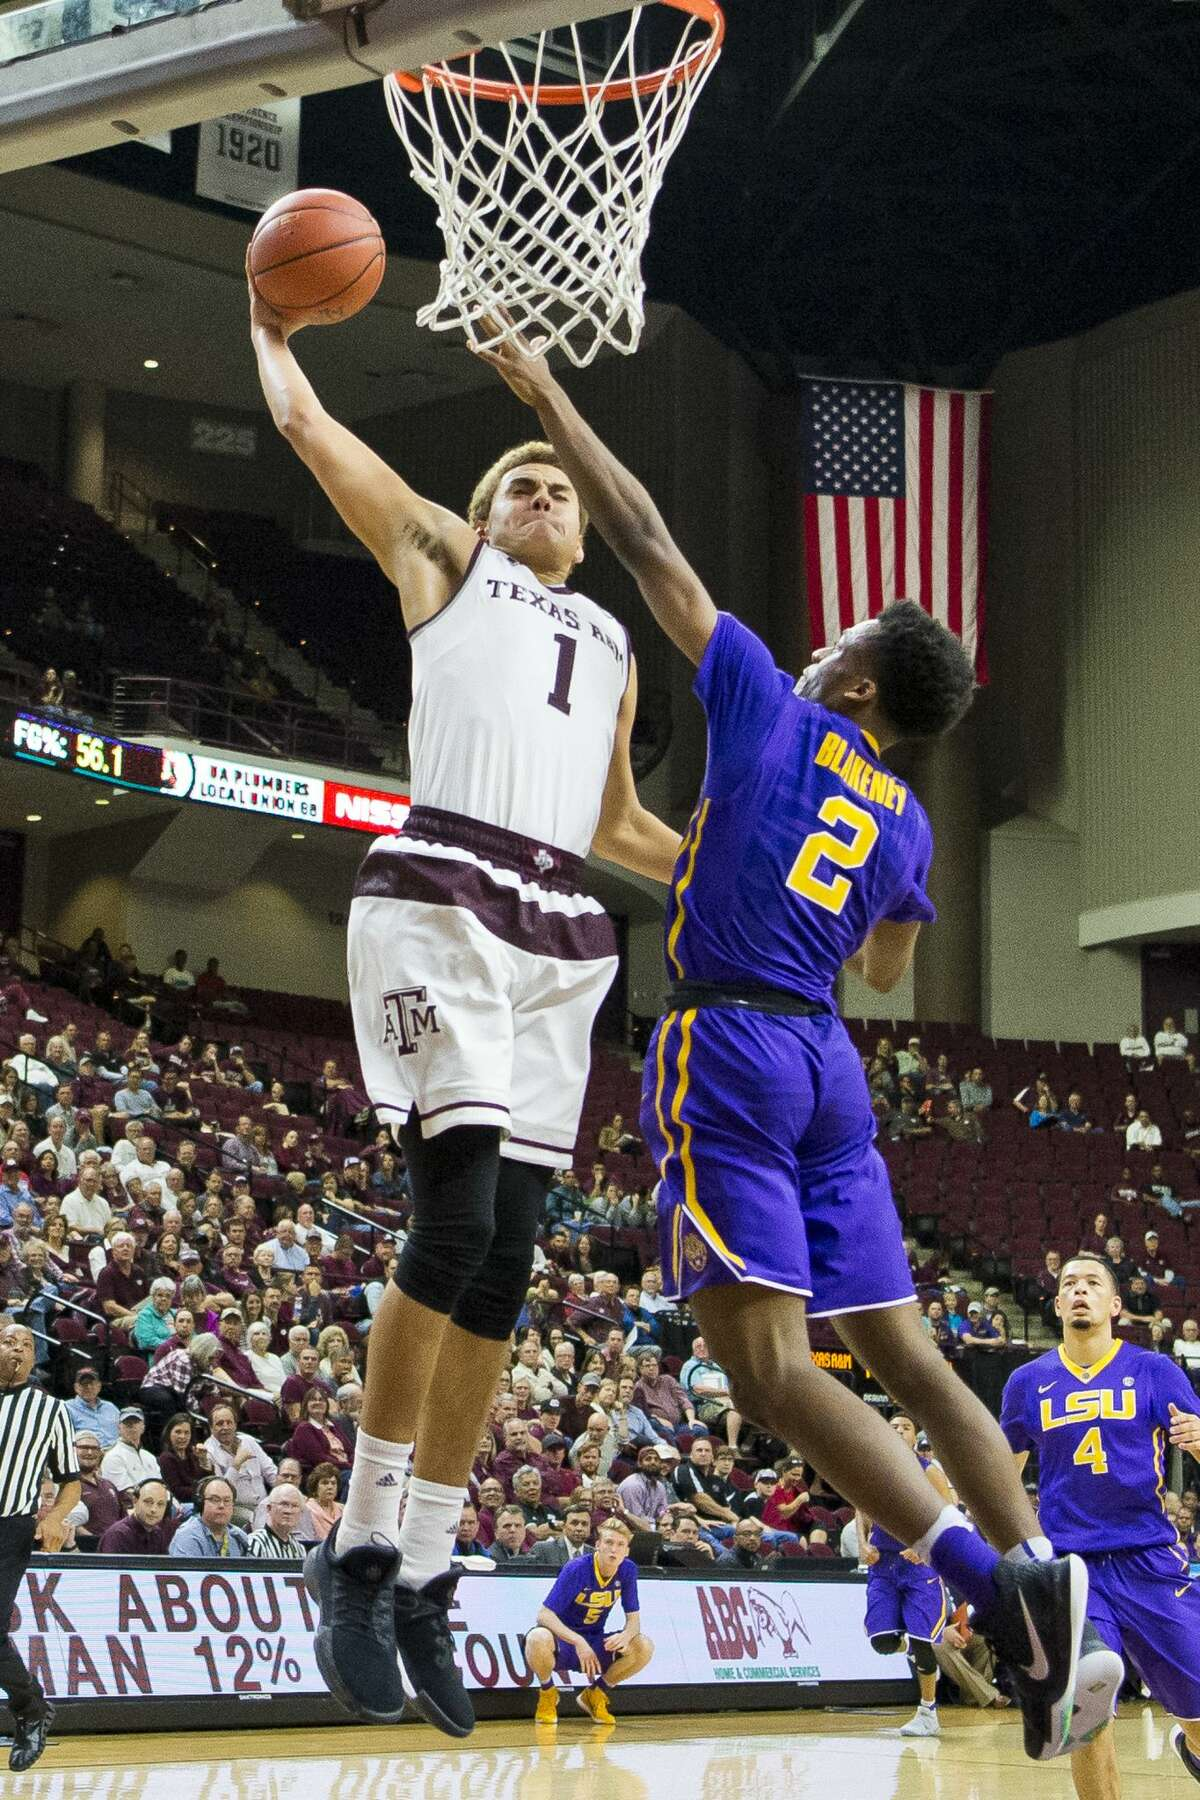 Texas A&M forward D.J. Hogg (1) dunks over LSU guard Antonio Blakeney (2) during an NCAA college basketball game Wednesday, Jan. 11, 2017, in College Station, Texas. (Timothy Hurst/College Station Eagle via AP)